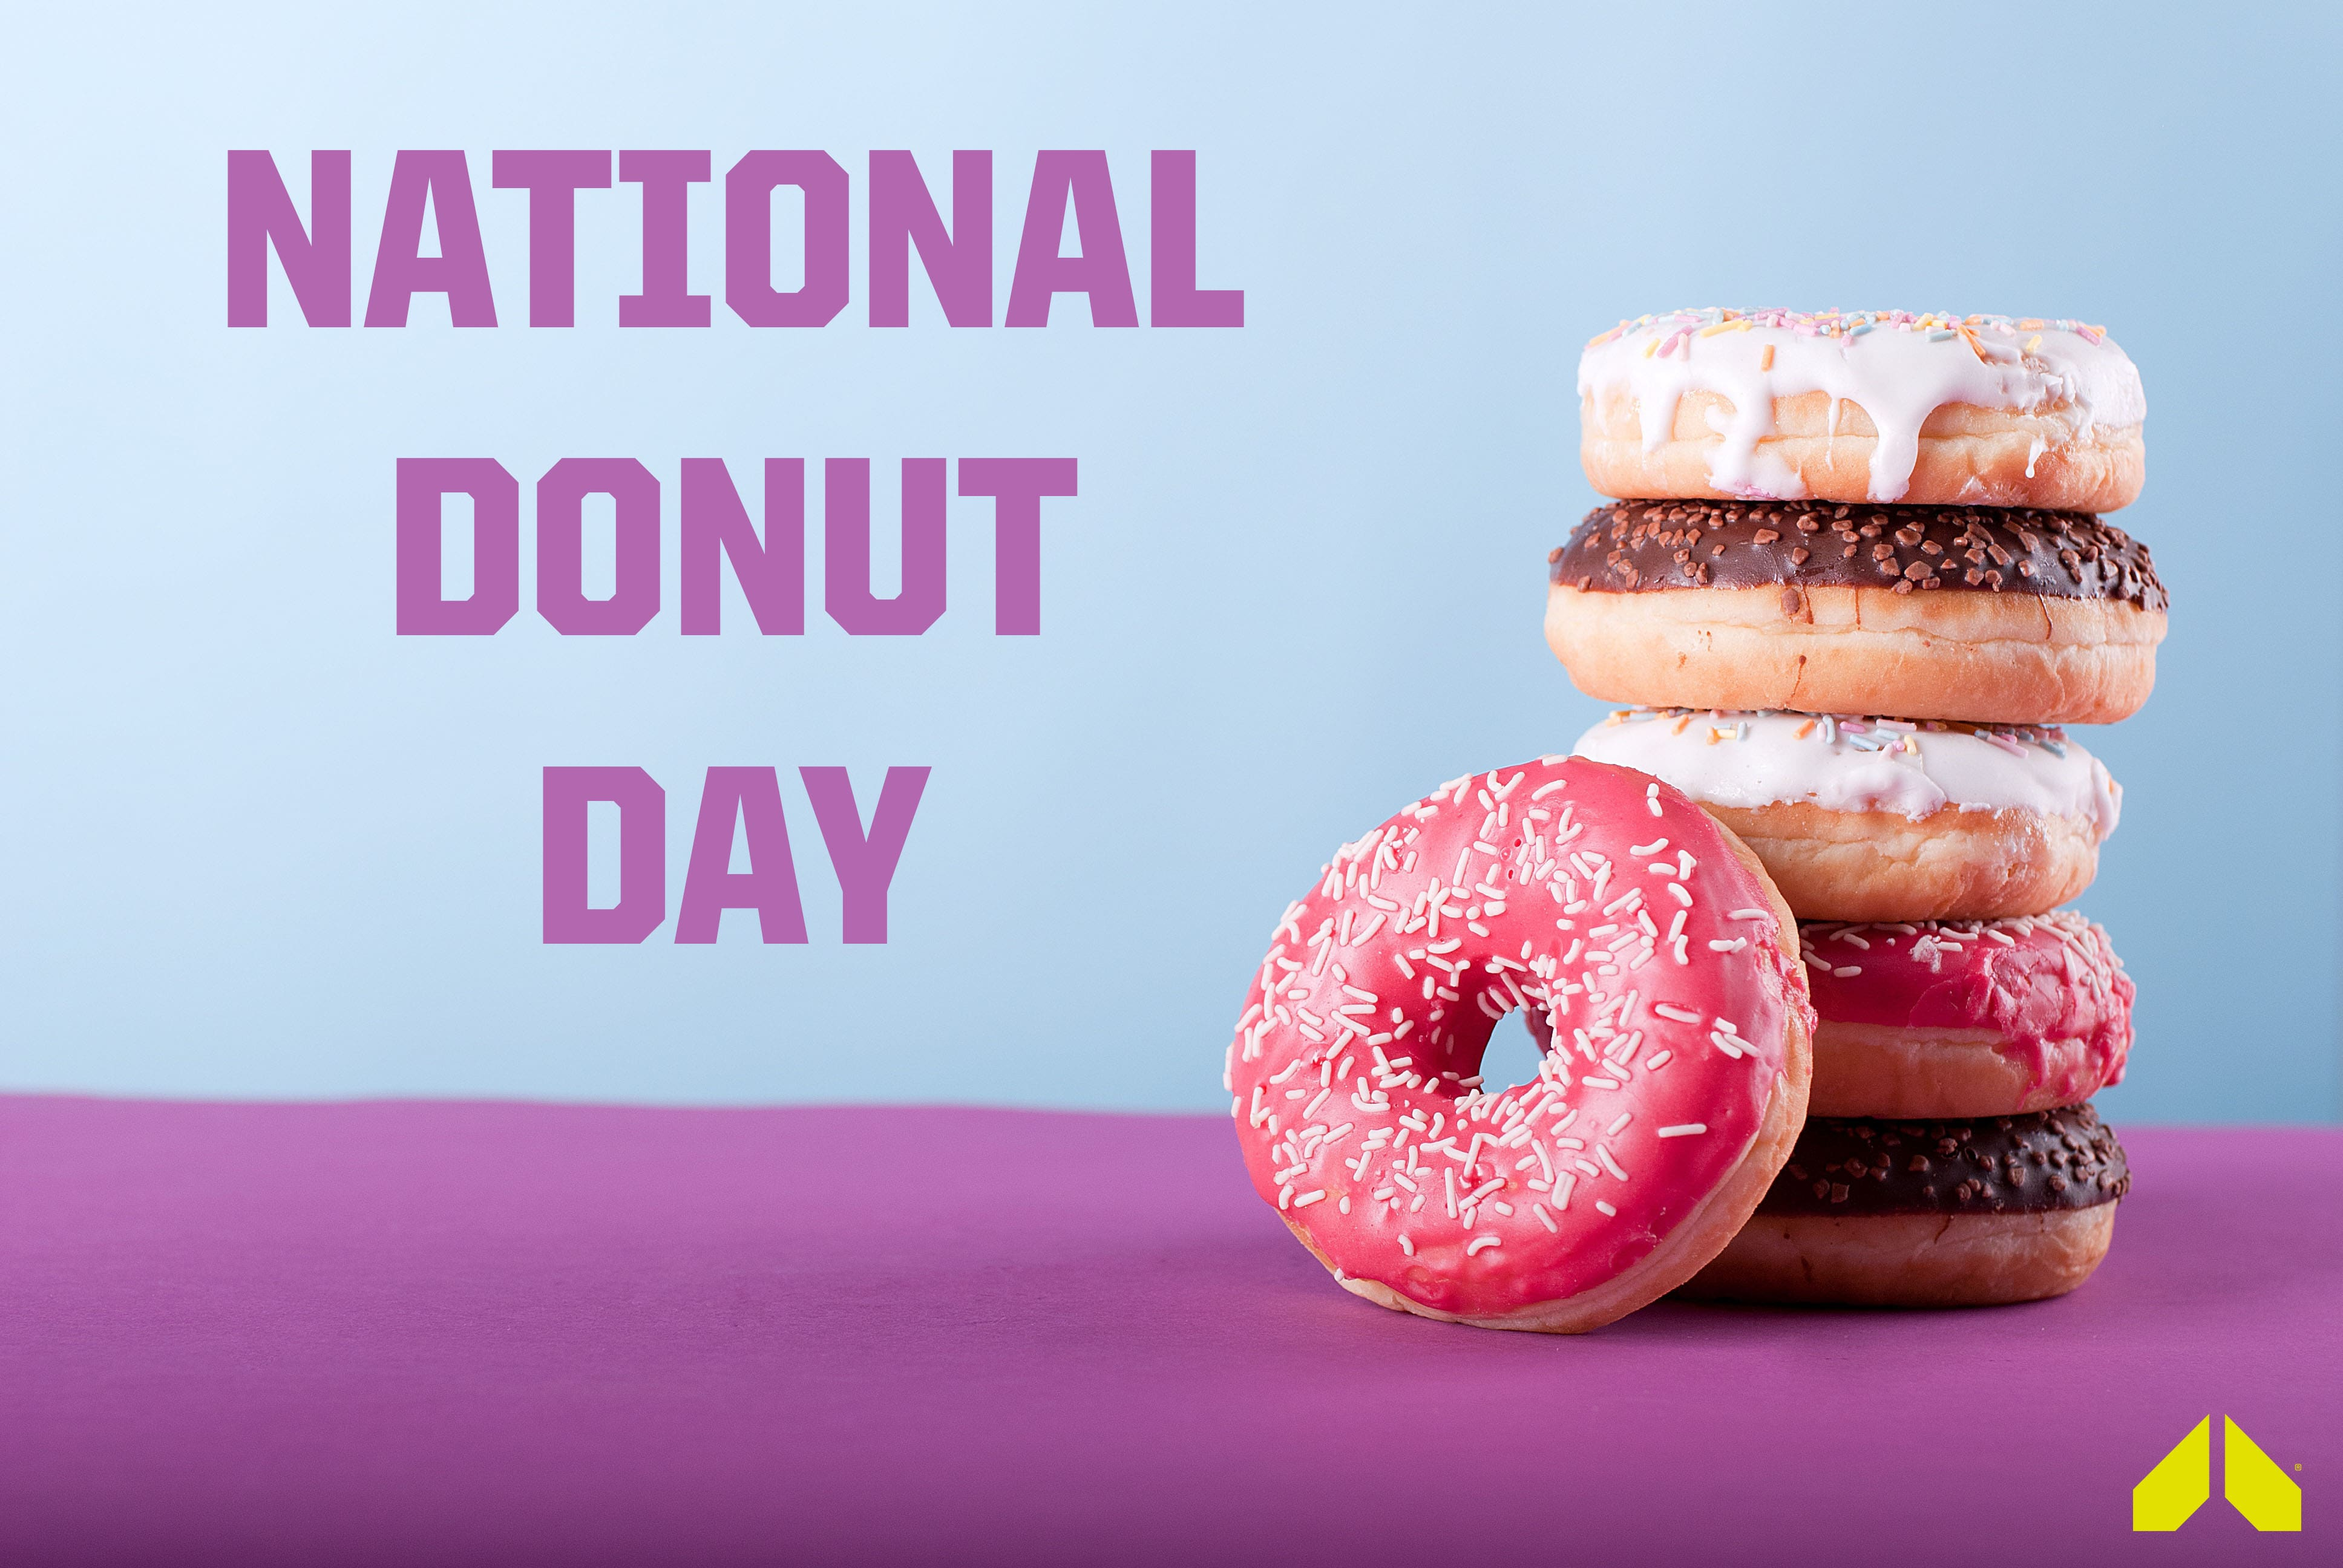 National Donut Day Wallpaper 2